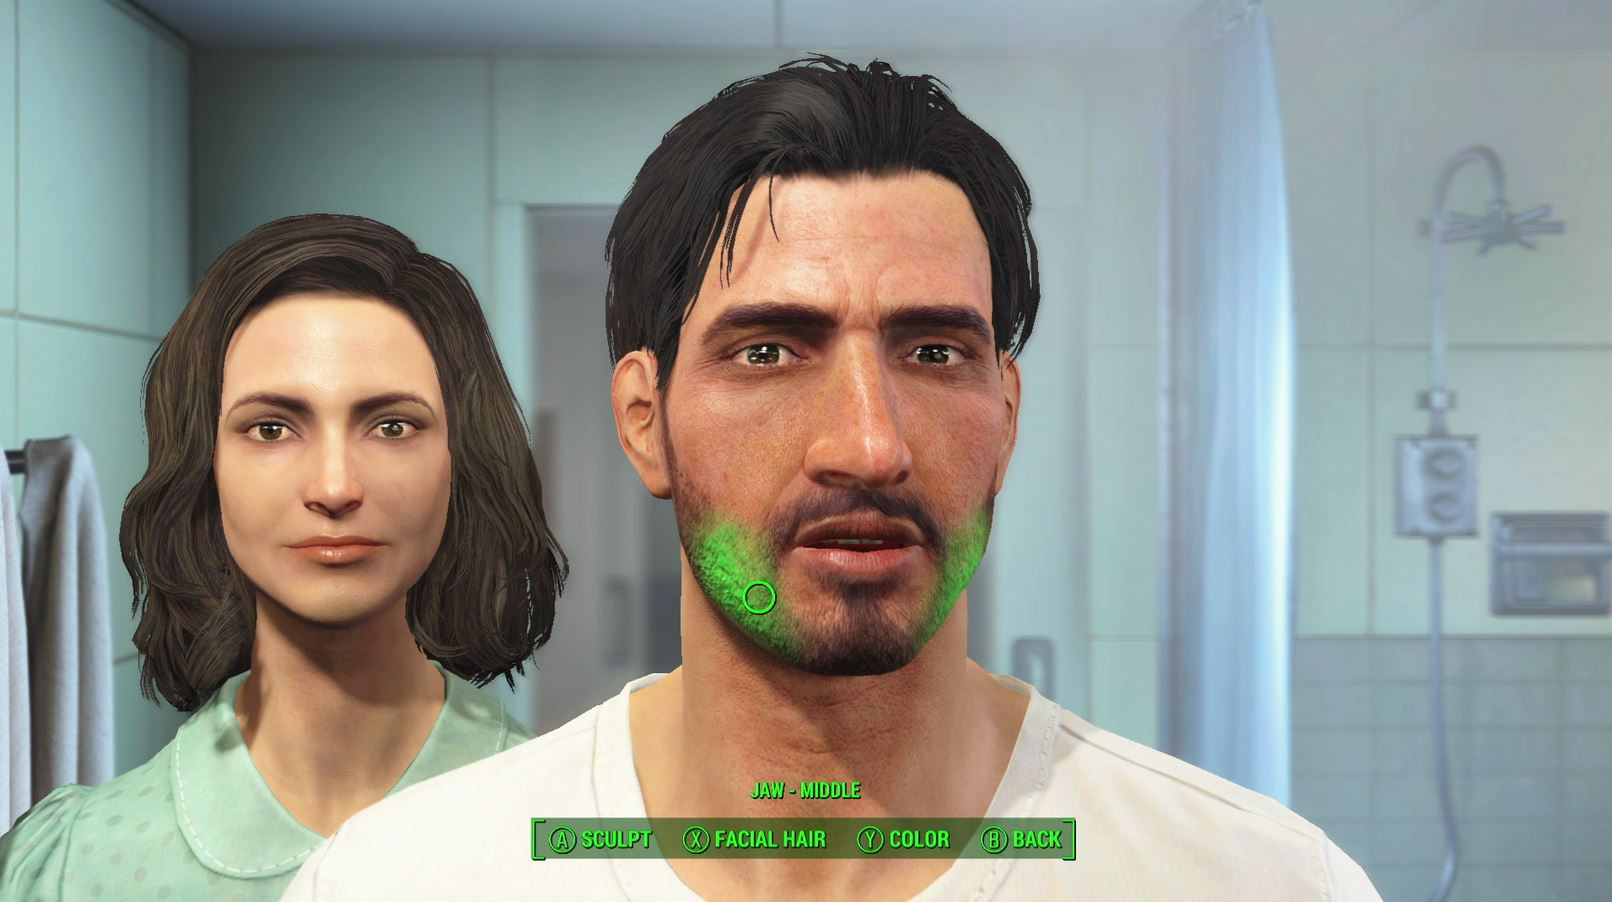 1447321077_fallout4characters.jpg